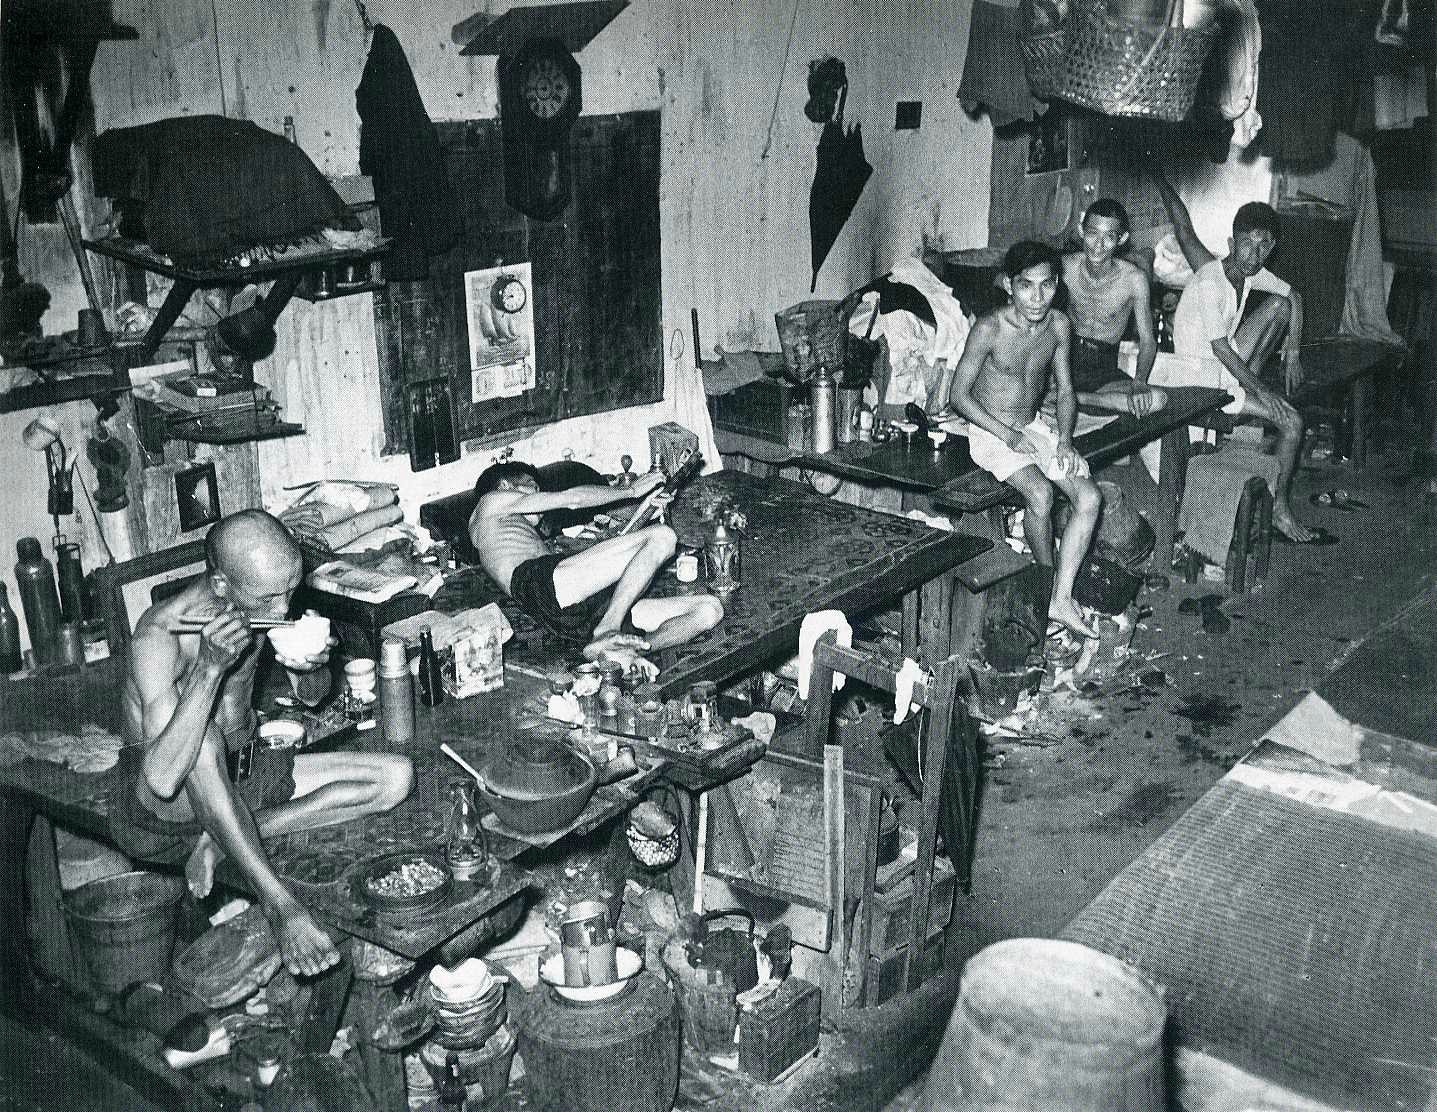 An opium den in Singapore (1941)